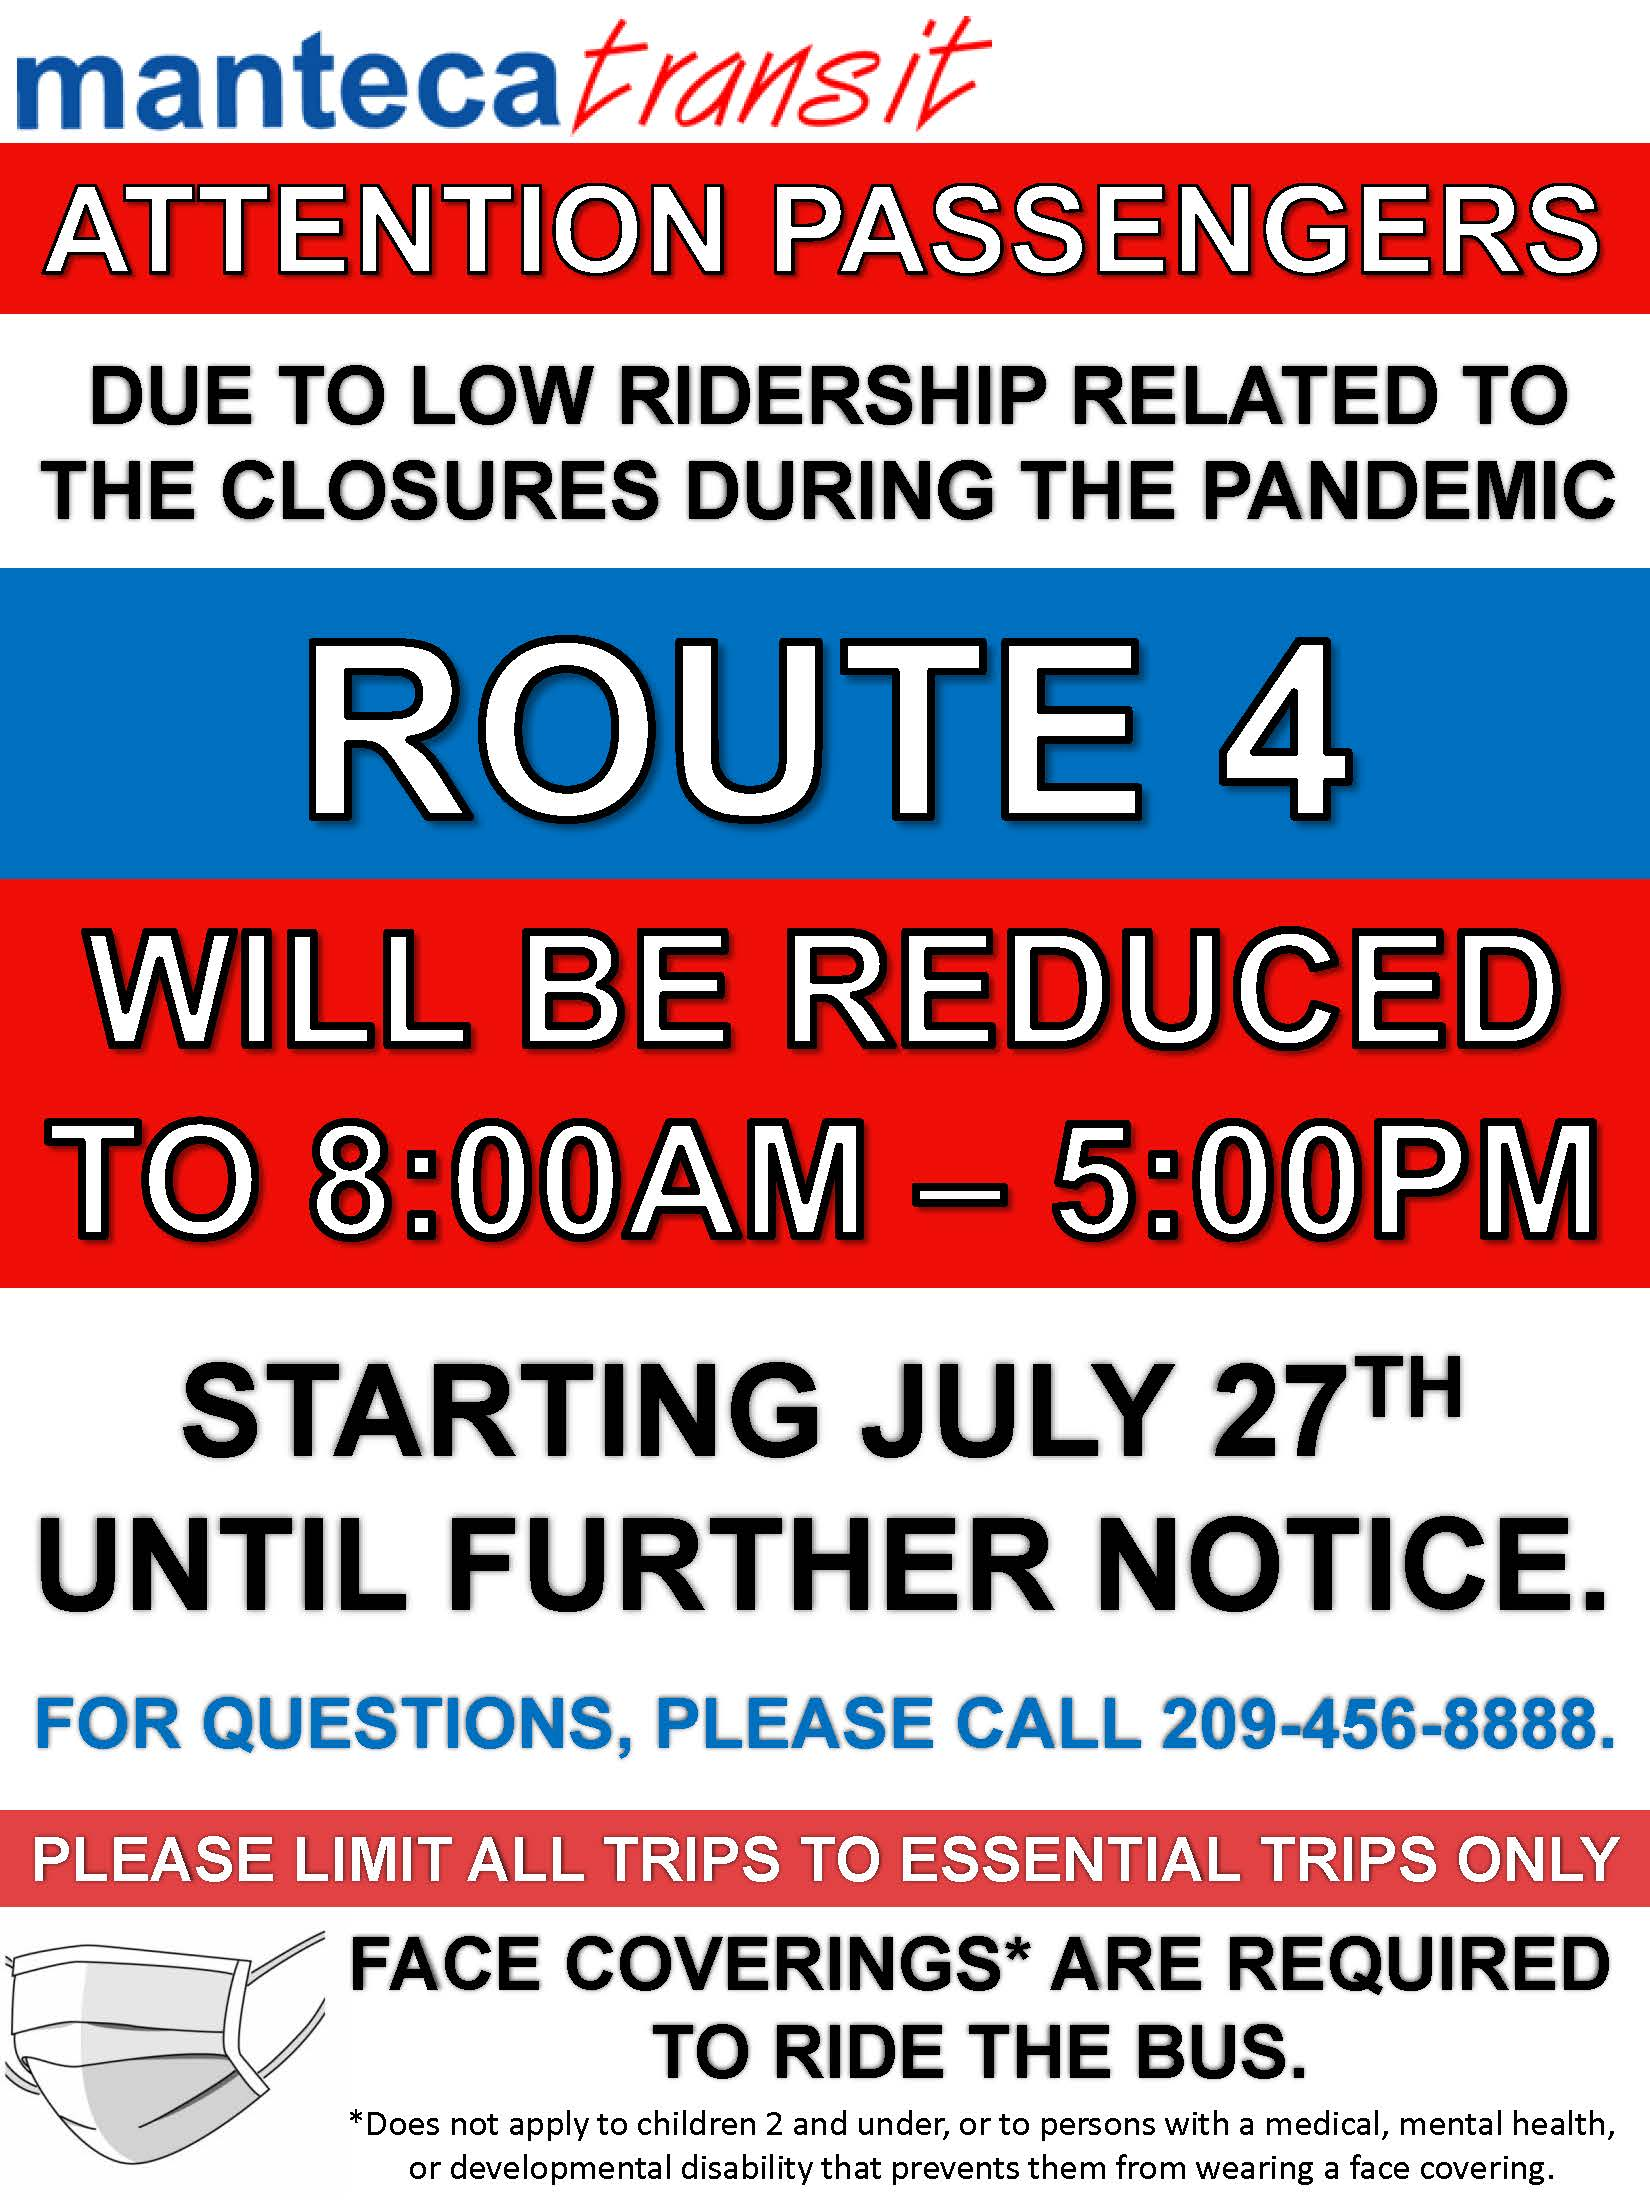 ROUTE 4 Schedule Changes.jpg